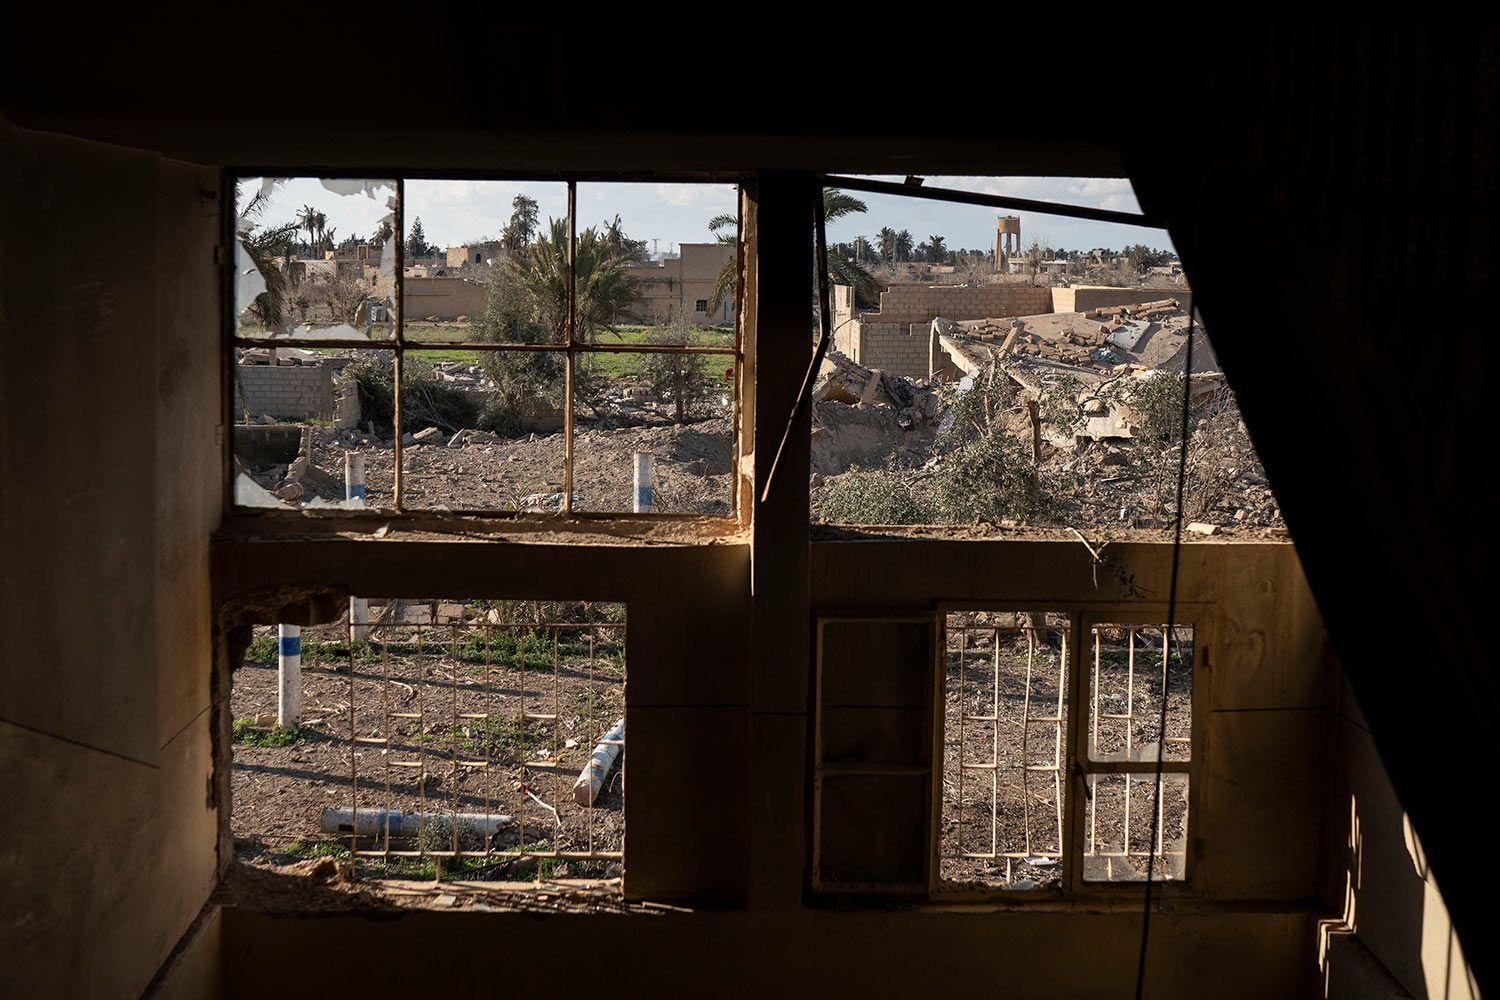 Destroyed homes are framed by damaged windows in a building taken by U.S.-backed Syrian Democratic Forces (SDF) near the last land still held by Islamic State militants in Baghouz, Syria, Monday, Feb. 18, 2019. (AP Photo/Felipe Dana)